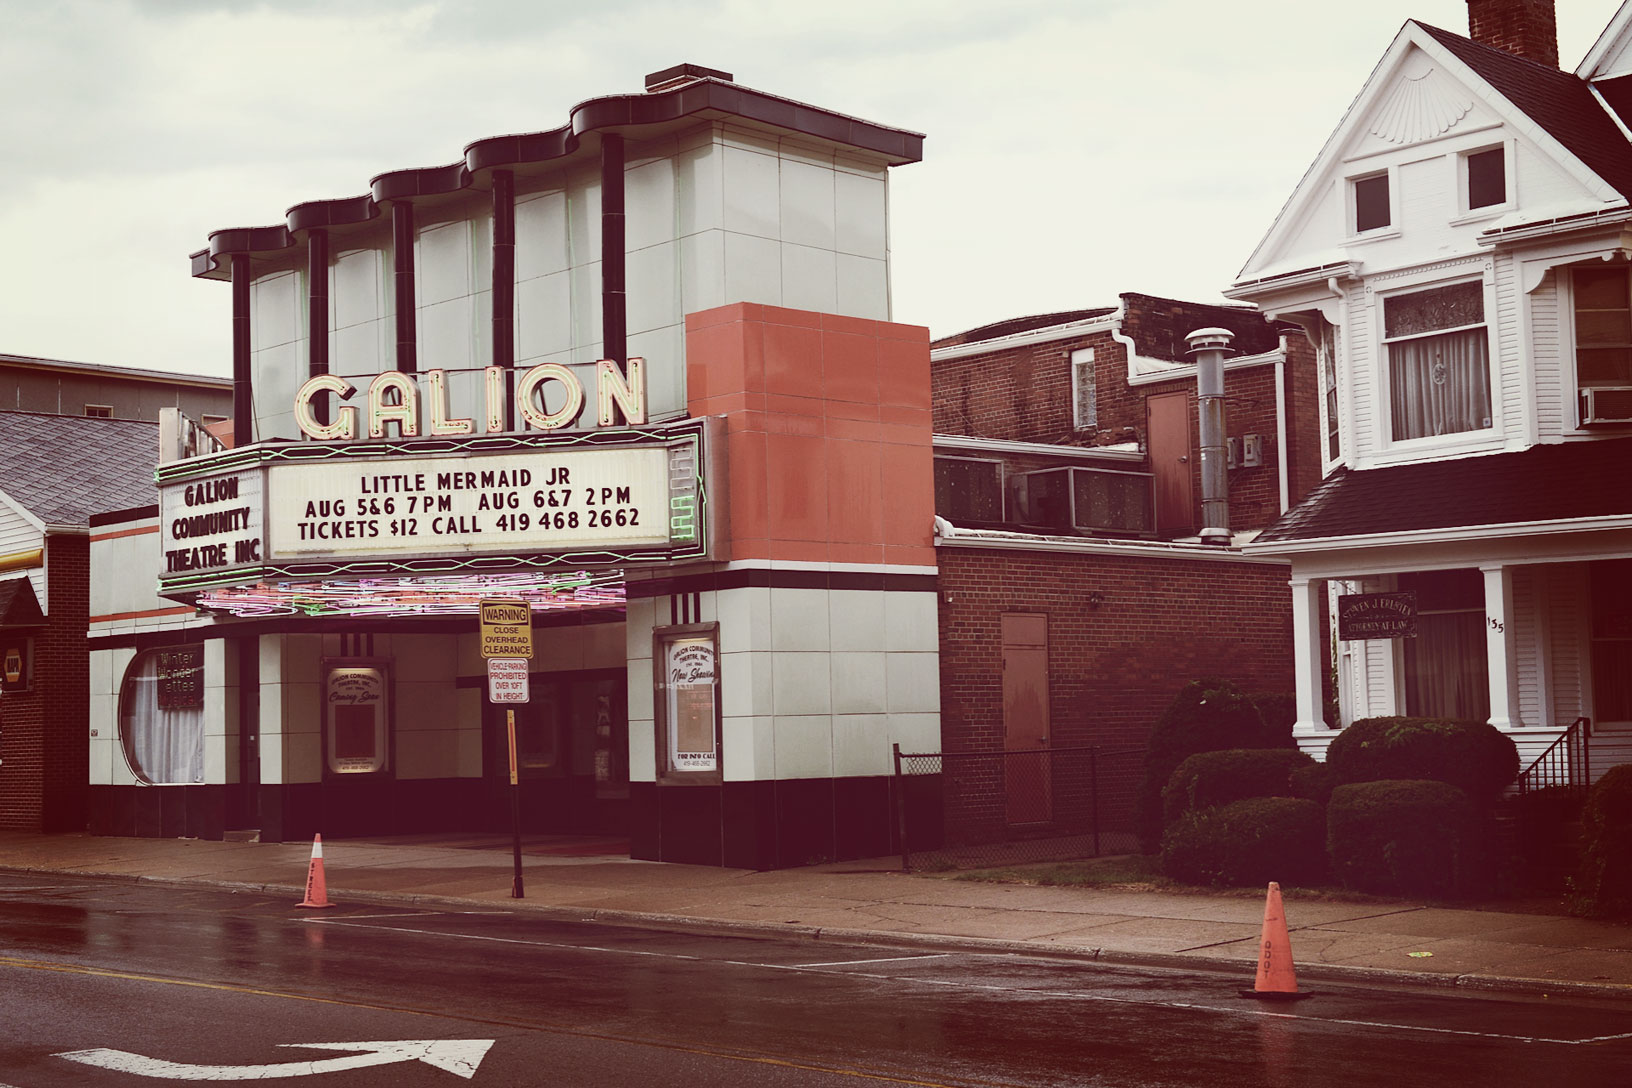 Galion, Ohio